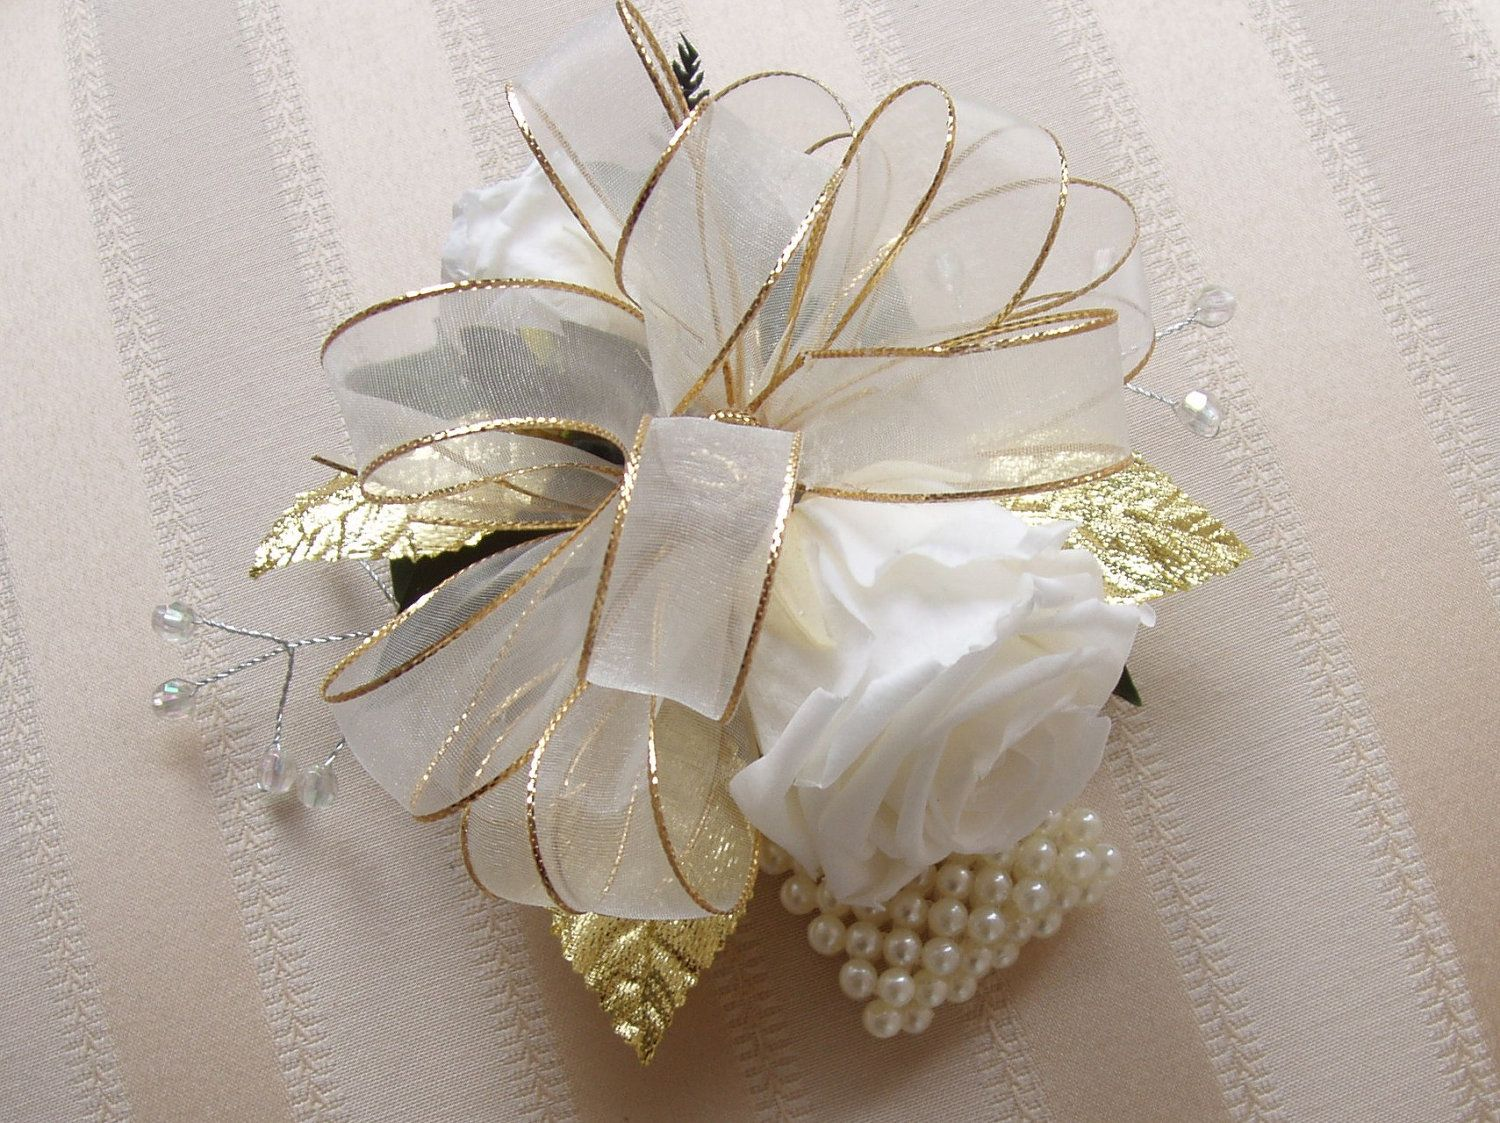 Dresses for 50th wedding anniversary party  TH Golden WEDDING Anniversary CORSAGE Boutonniere Preserved Rose